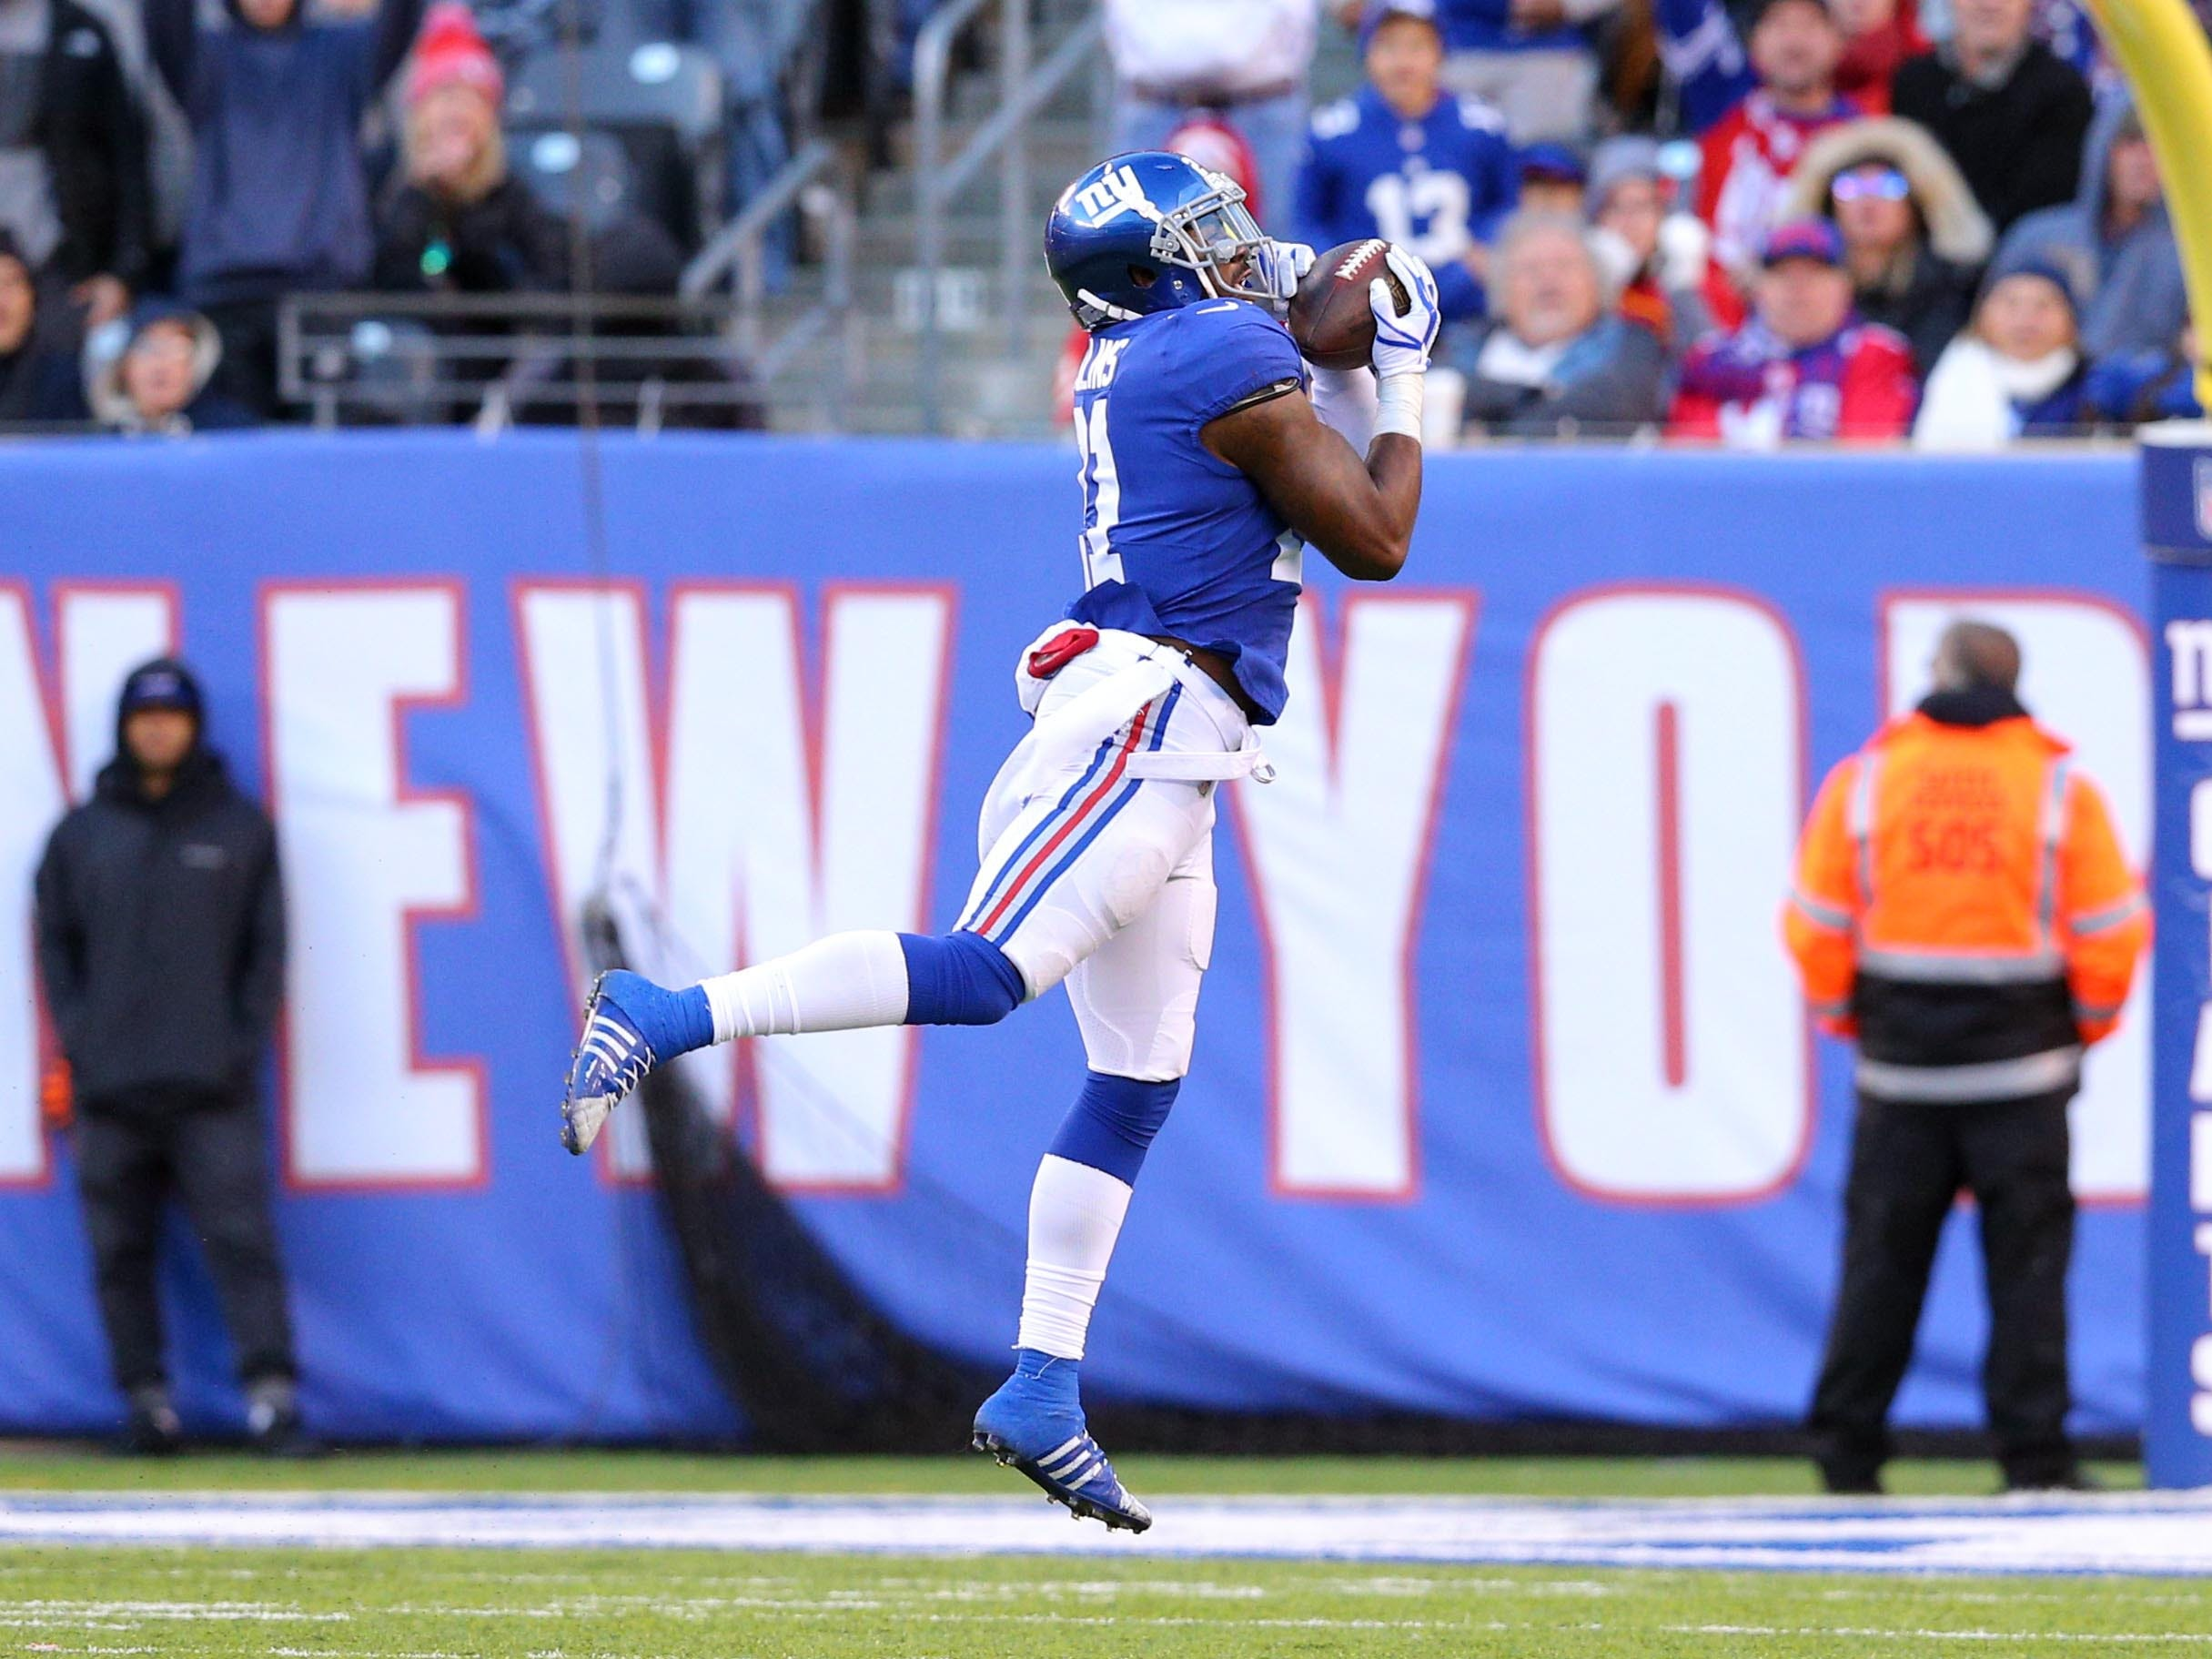 10. Landon Collins, S, Giants: Agreed to deal with Redskins